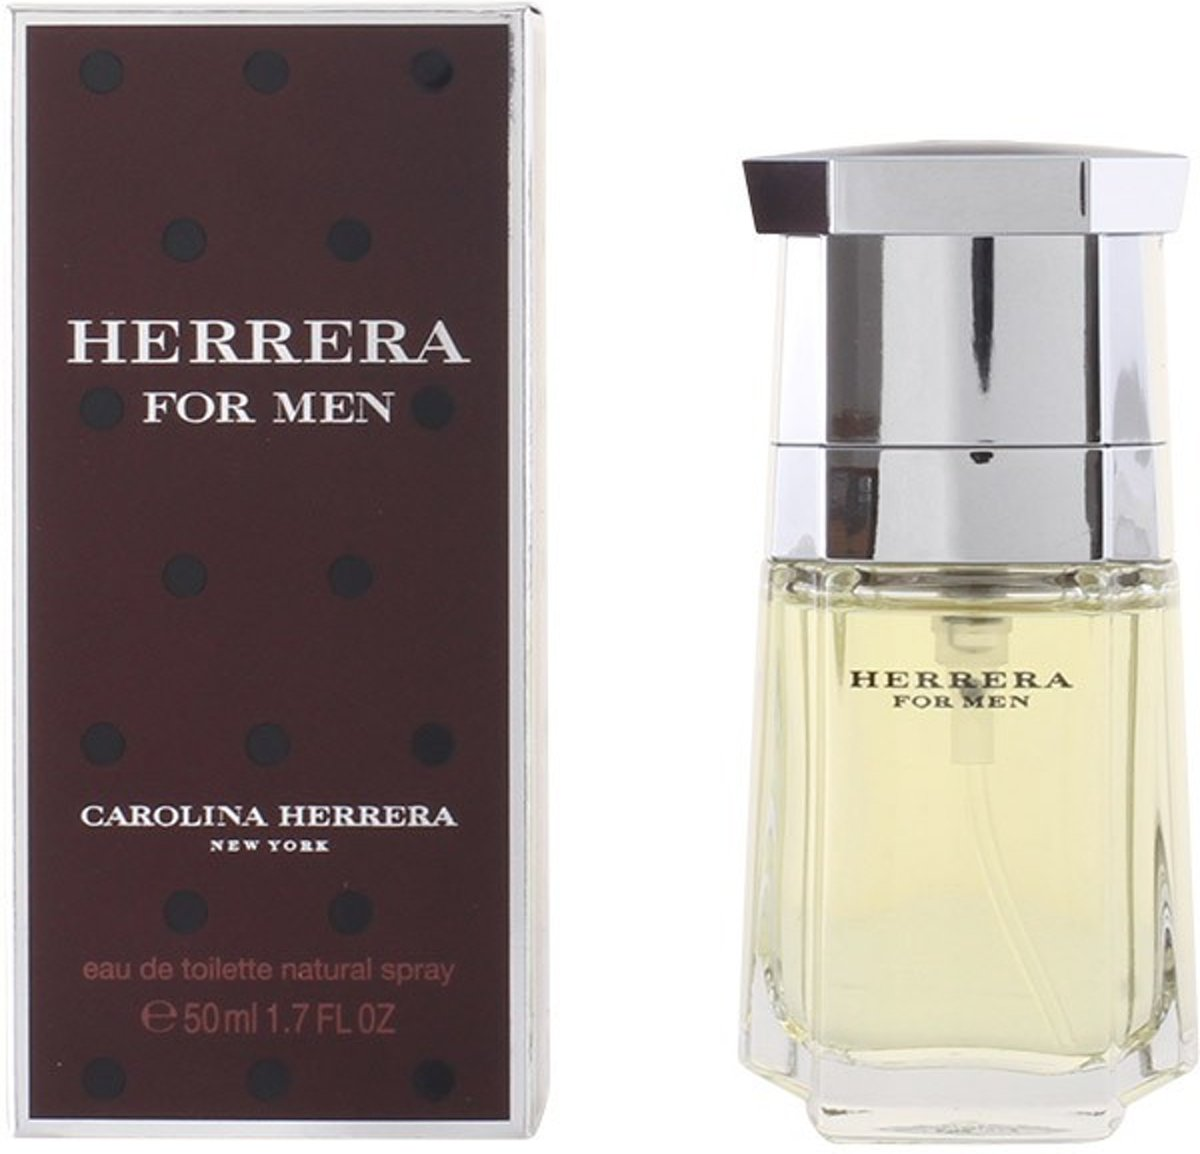 MULTI BUNDEL 2 stuks HERRERA FOR MEN Eau de Toilette Spray 50 ml